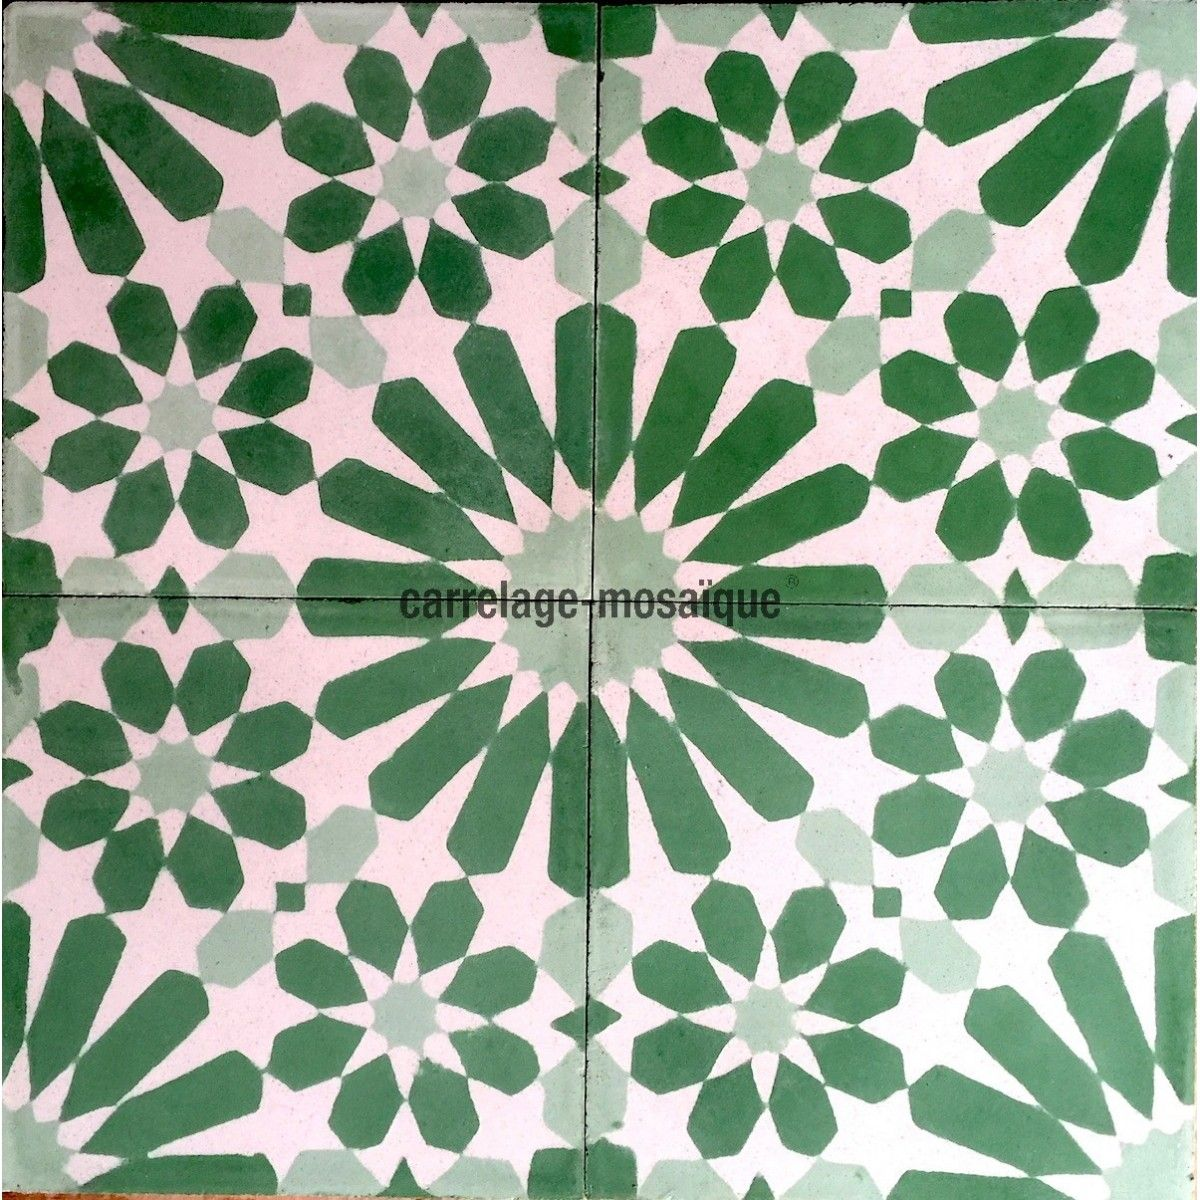 carreaux en ciment 1m2 modele anso-vert - carrelage-mosaique | tile